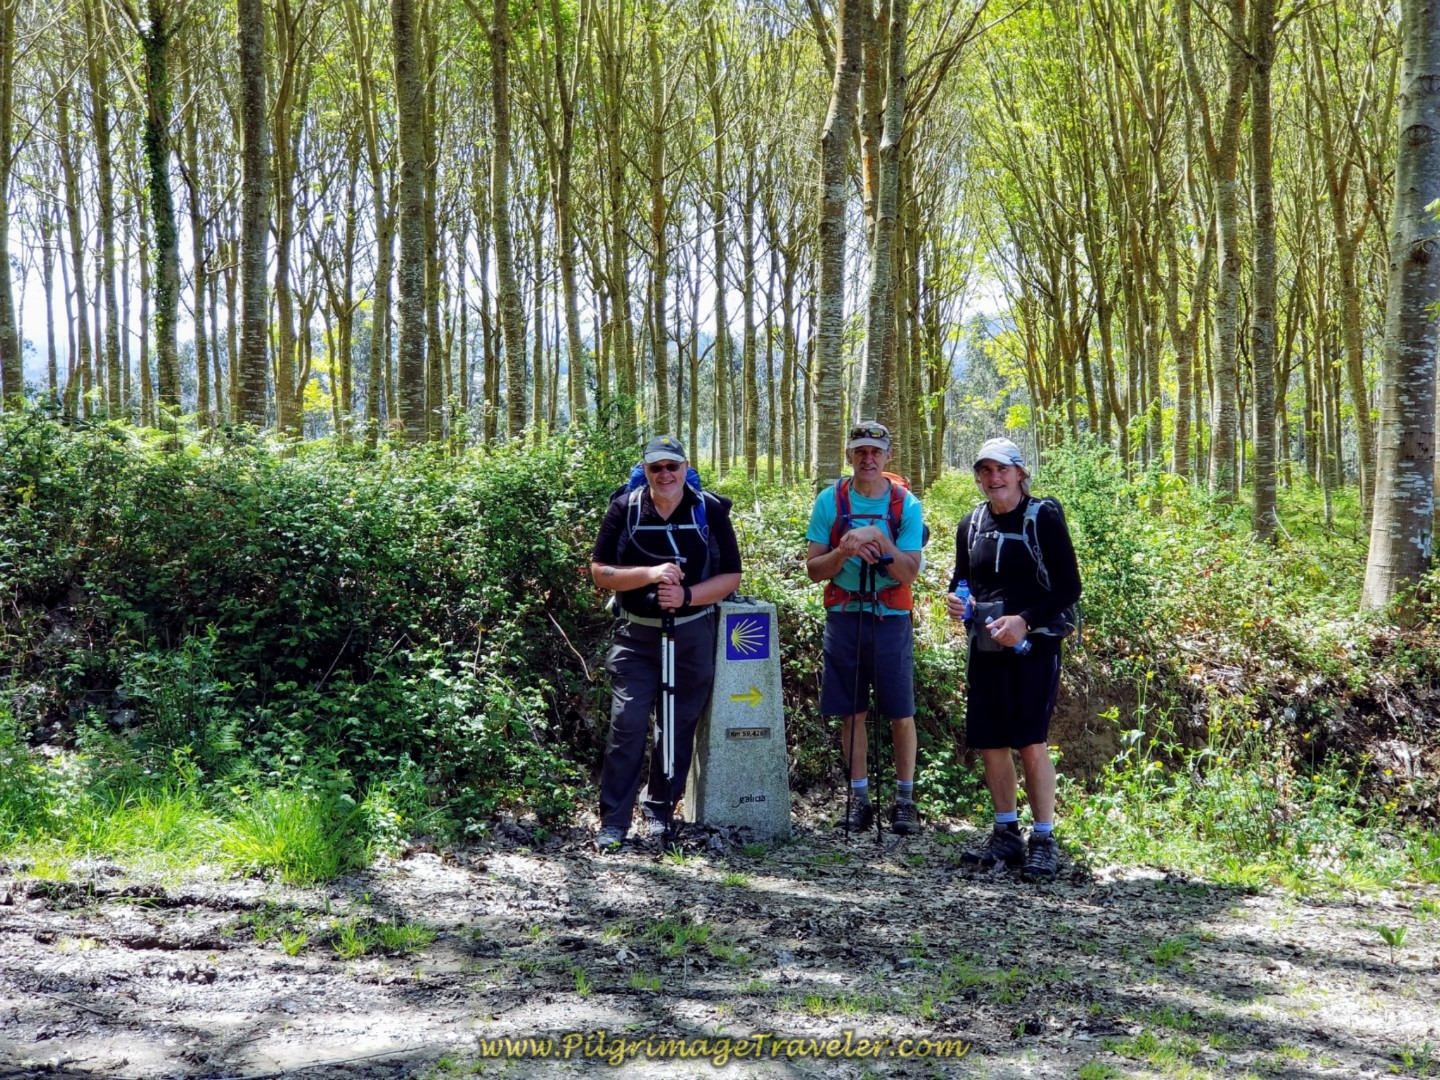 Pausing for a Water and Photo Break in the Forest on day five of the Camino Inglés